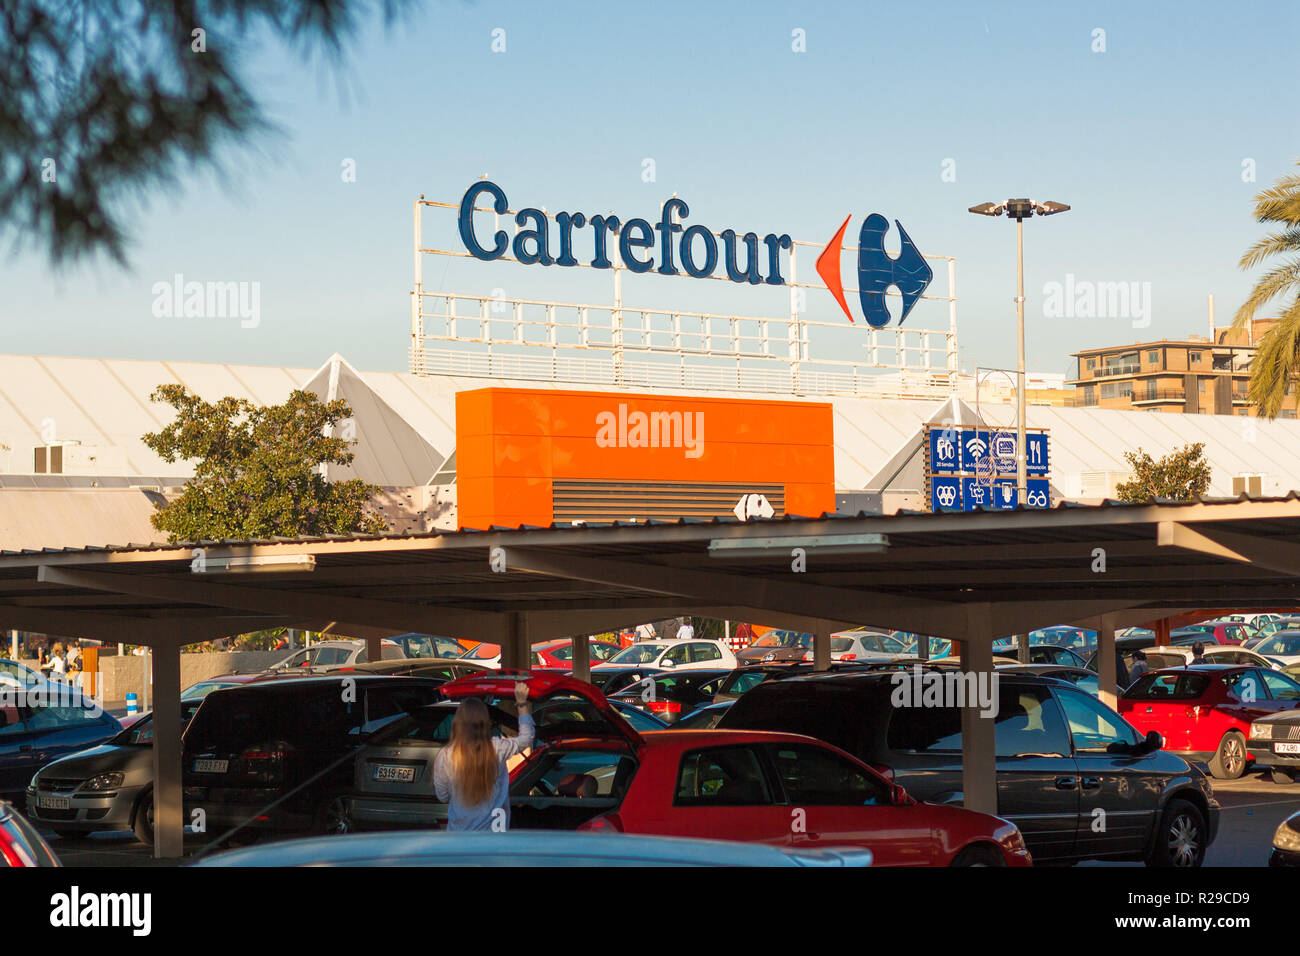 Carrefour Spain Stock Photos Carrefour Spain Stock Images Alamy